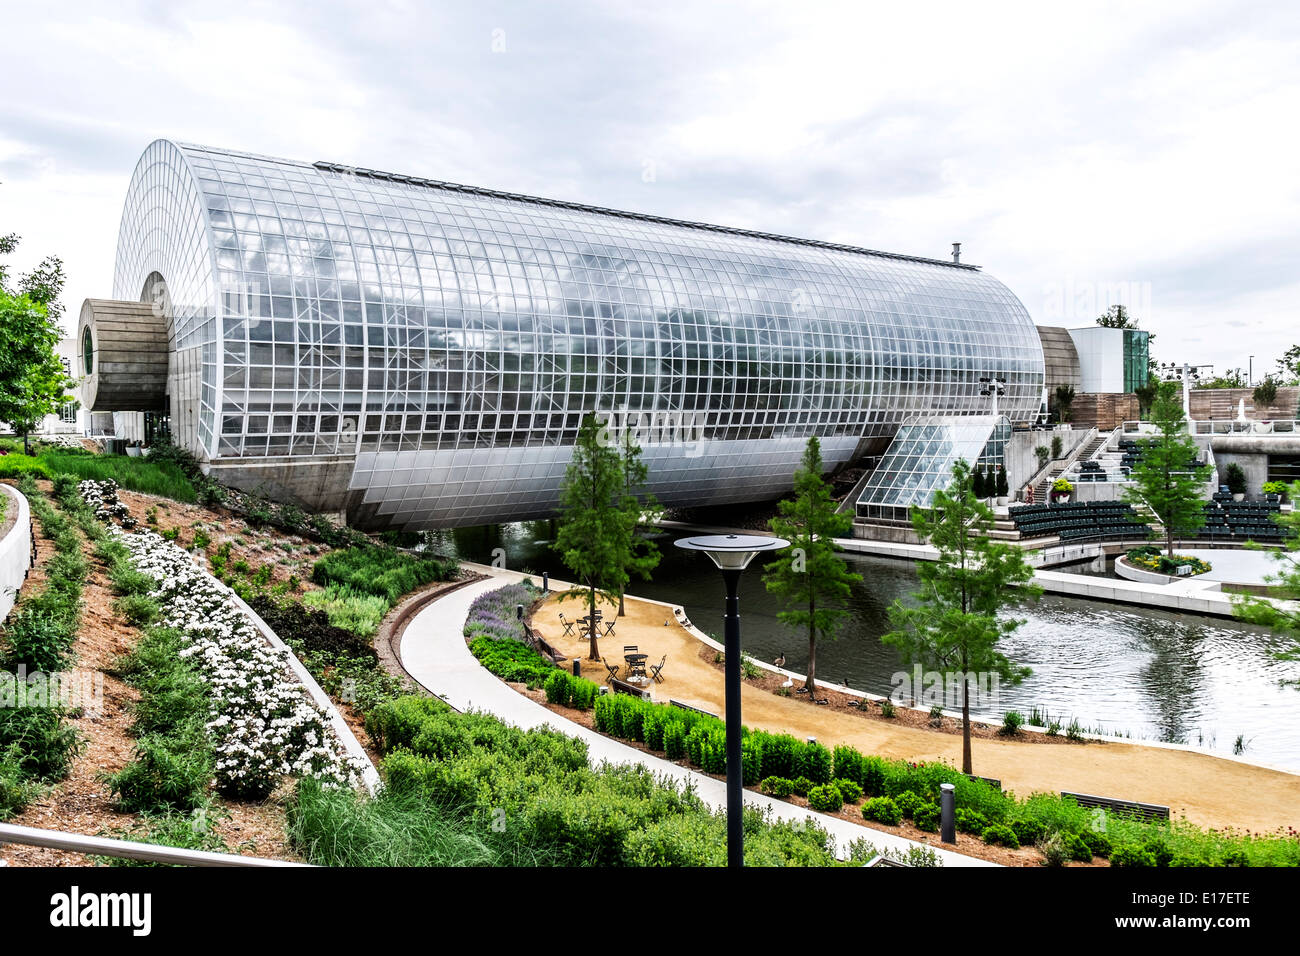 Gentil The Crystal Bridge Located In The Myriad Botanical Gardens In Downtown Oklahoma  City, USA, At Reno And Robinson